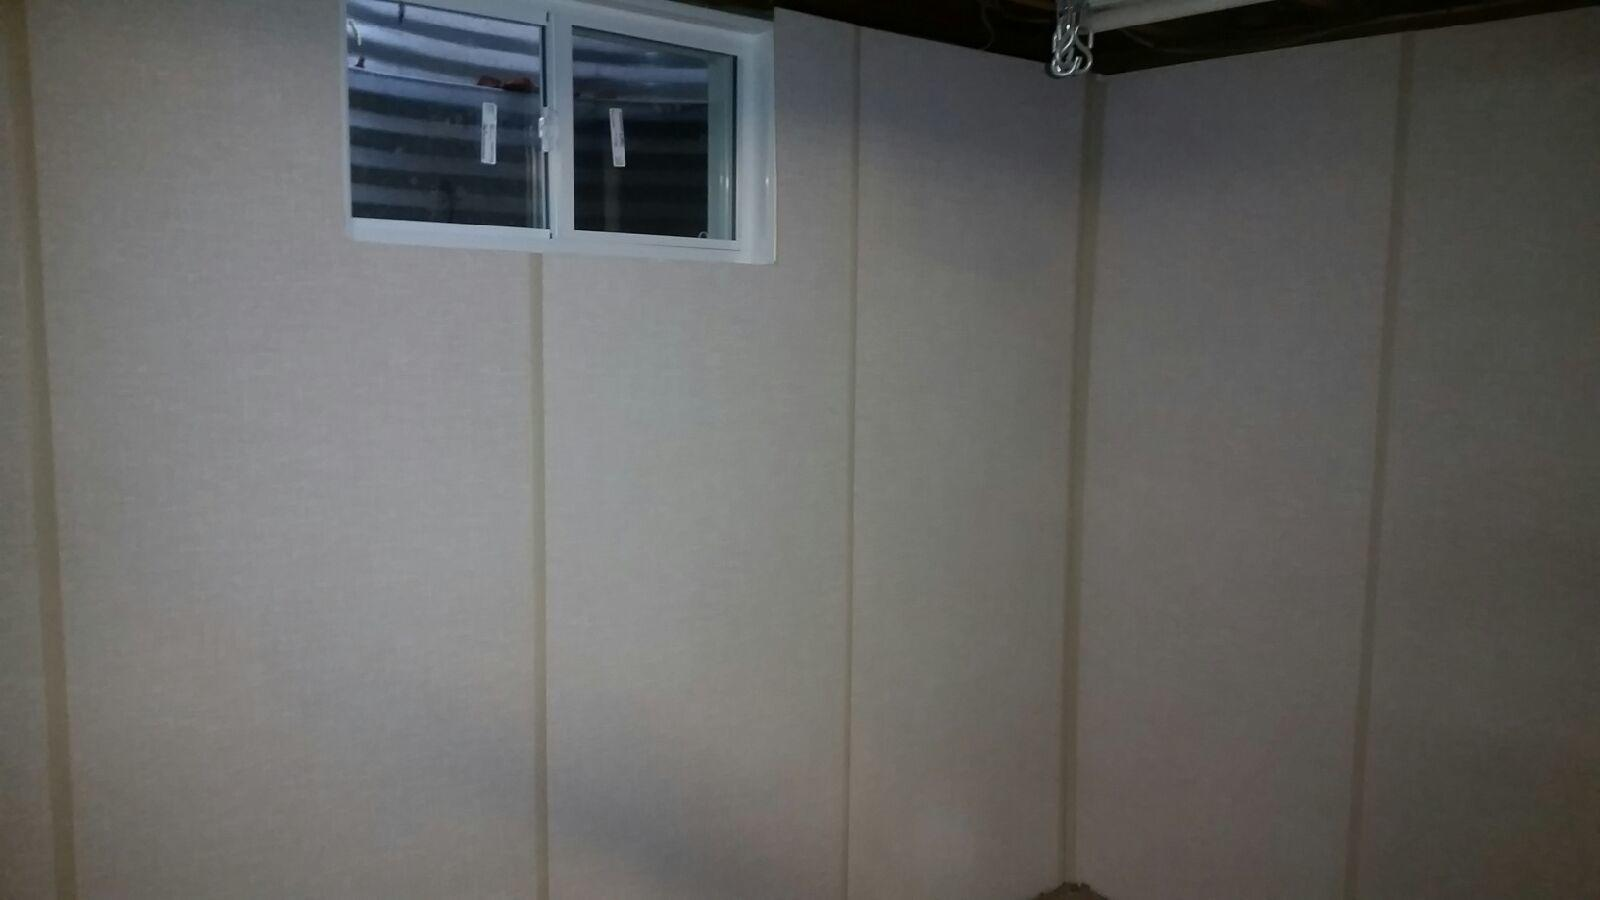 ZenWall Wall Panels Installed in Melville, NY Basement - After Photo